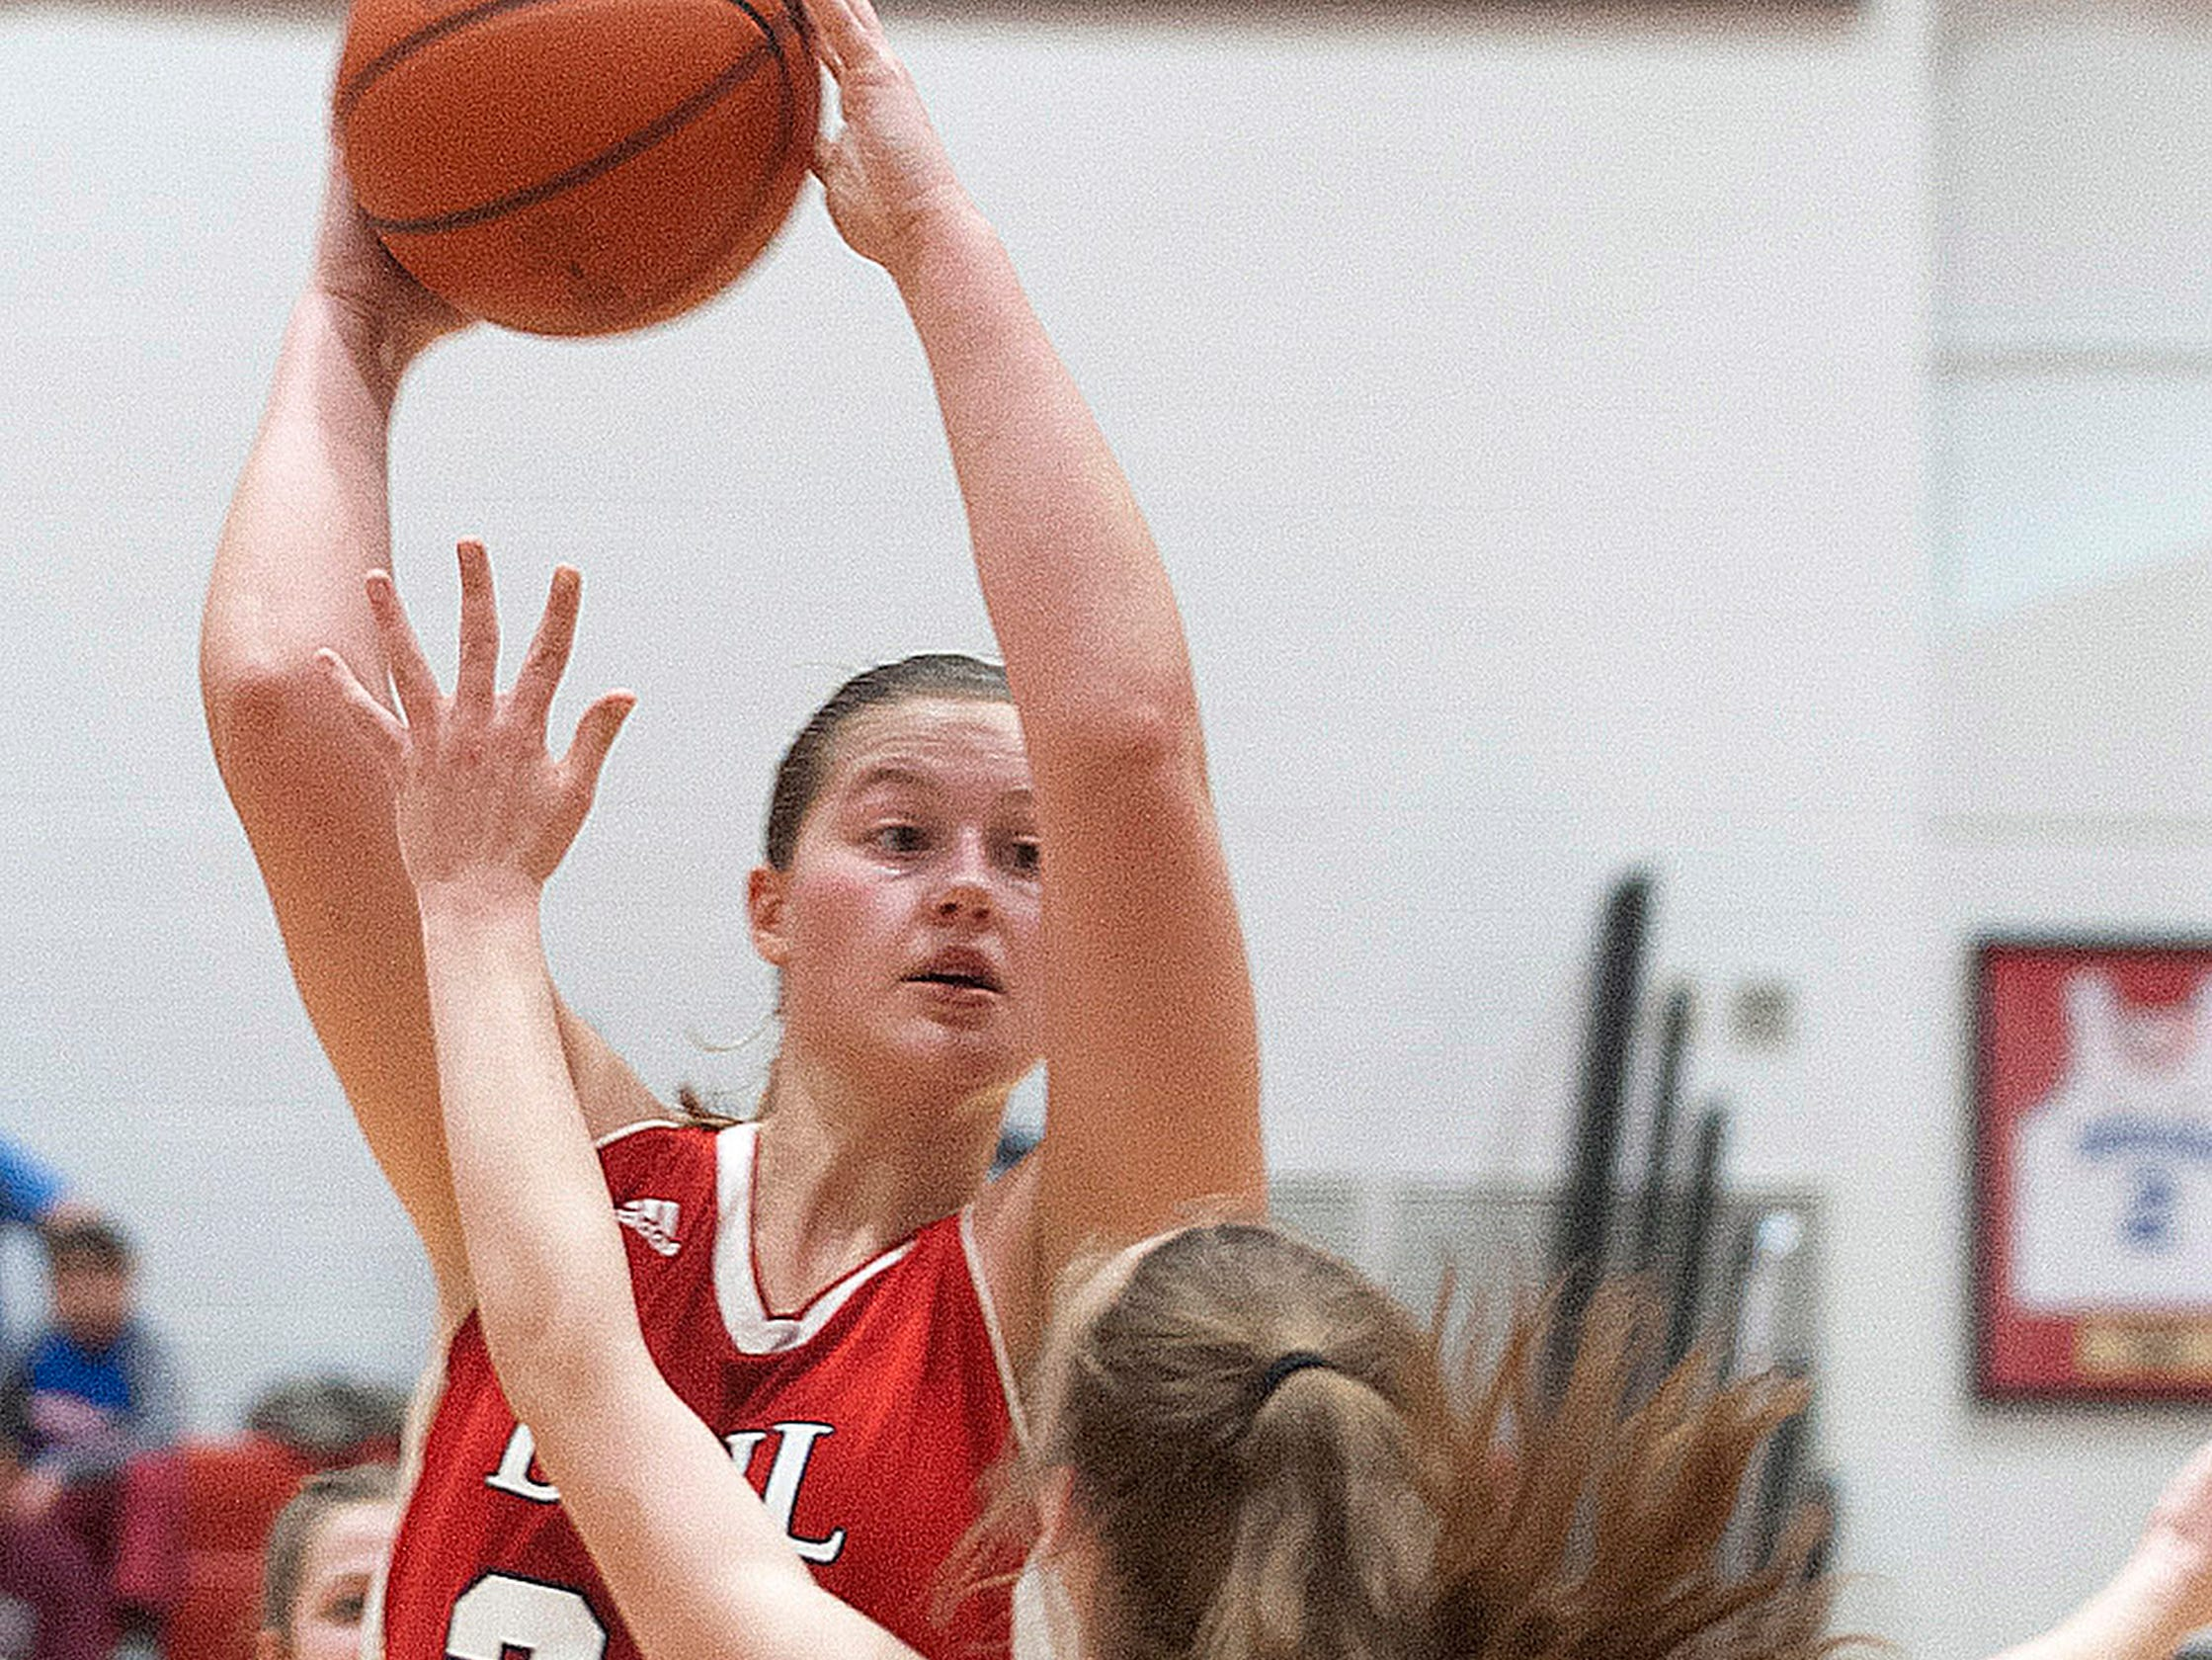 Bedford North Lawrence forward Jorie Allen puts a hot up over Jennings County guard Kali Thompson in the IHSAA New Albany Sectional Championship. BNL won the contest 56-34 with the help of Allen's team-high 17 points.05 February 2019